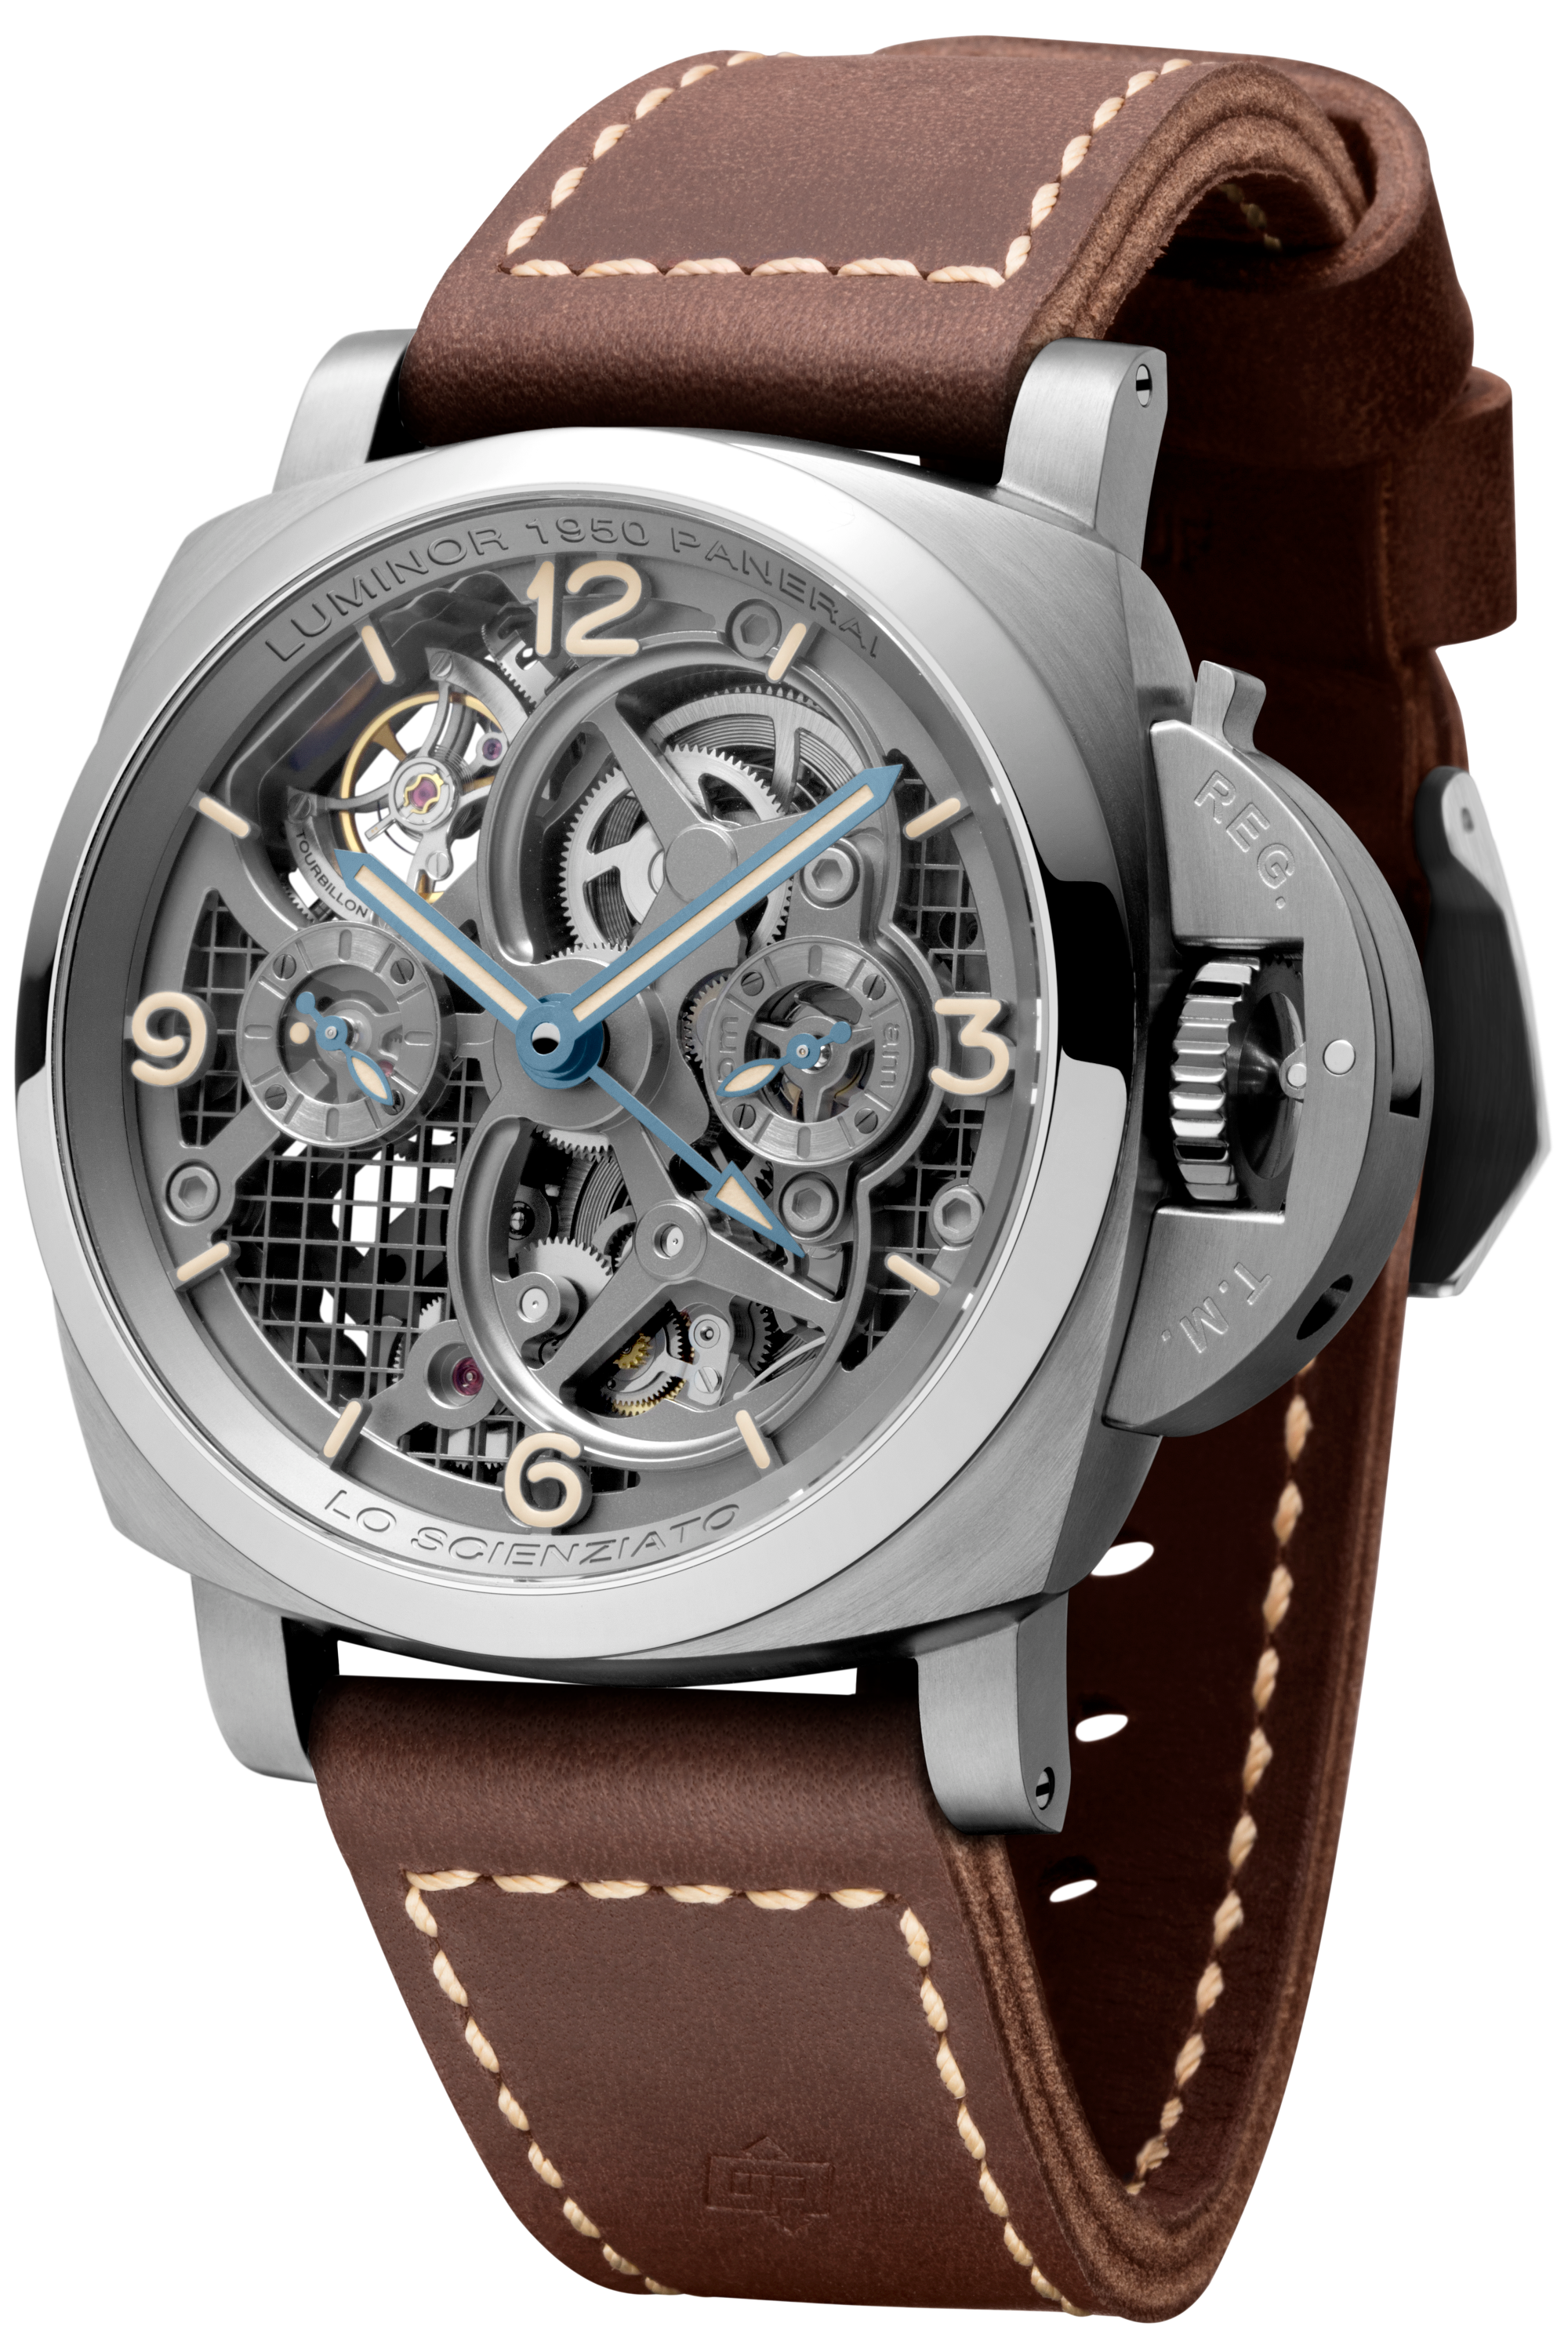 PNPAM00578 - Lo Scienziato - Luminor 1950 Tourbillon GMT Titanio - 47mm